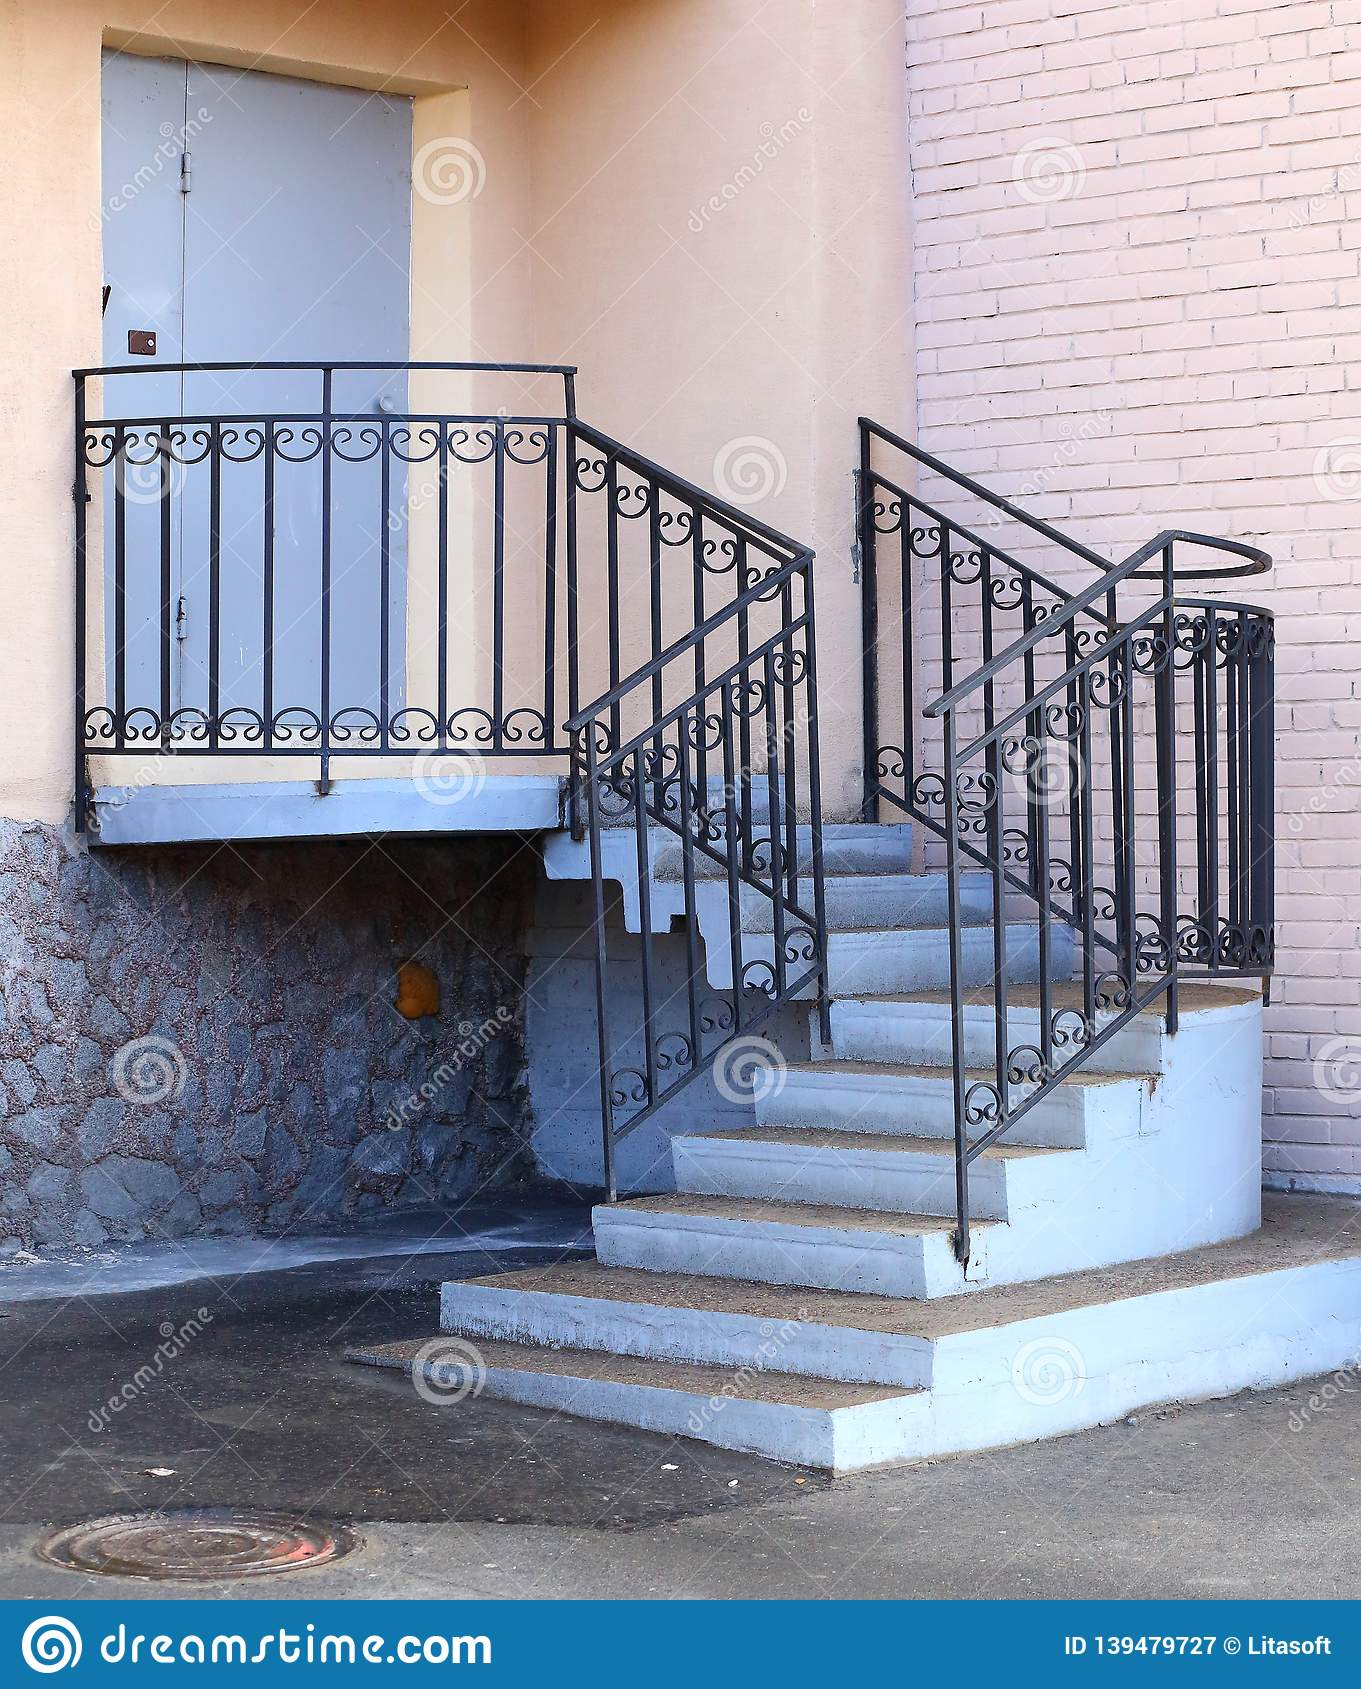 Entrance To The Building, Concrete Porch With Metal Railings Stock